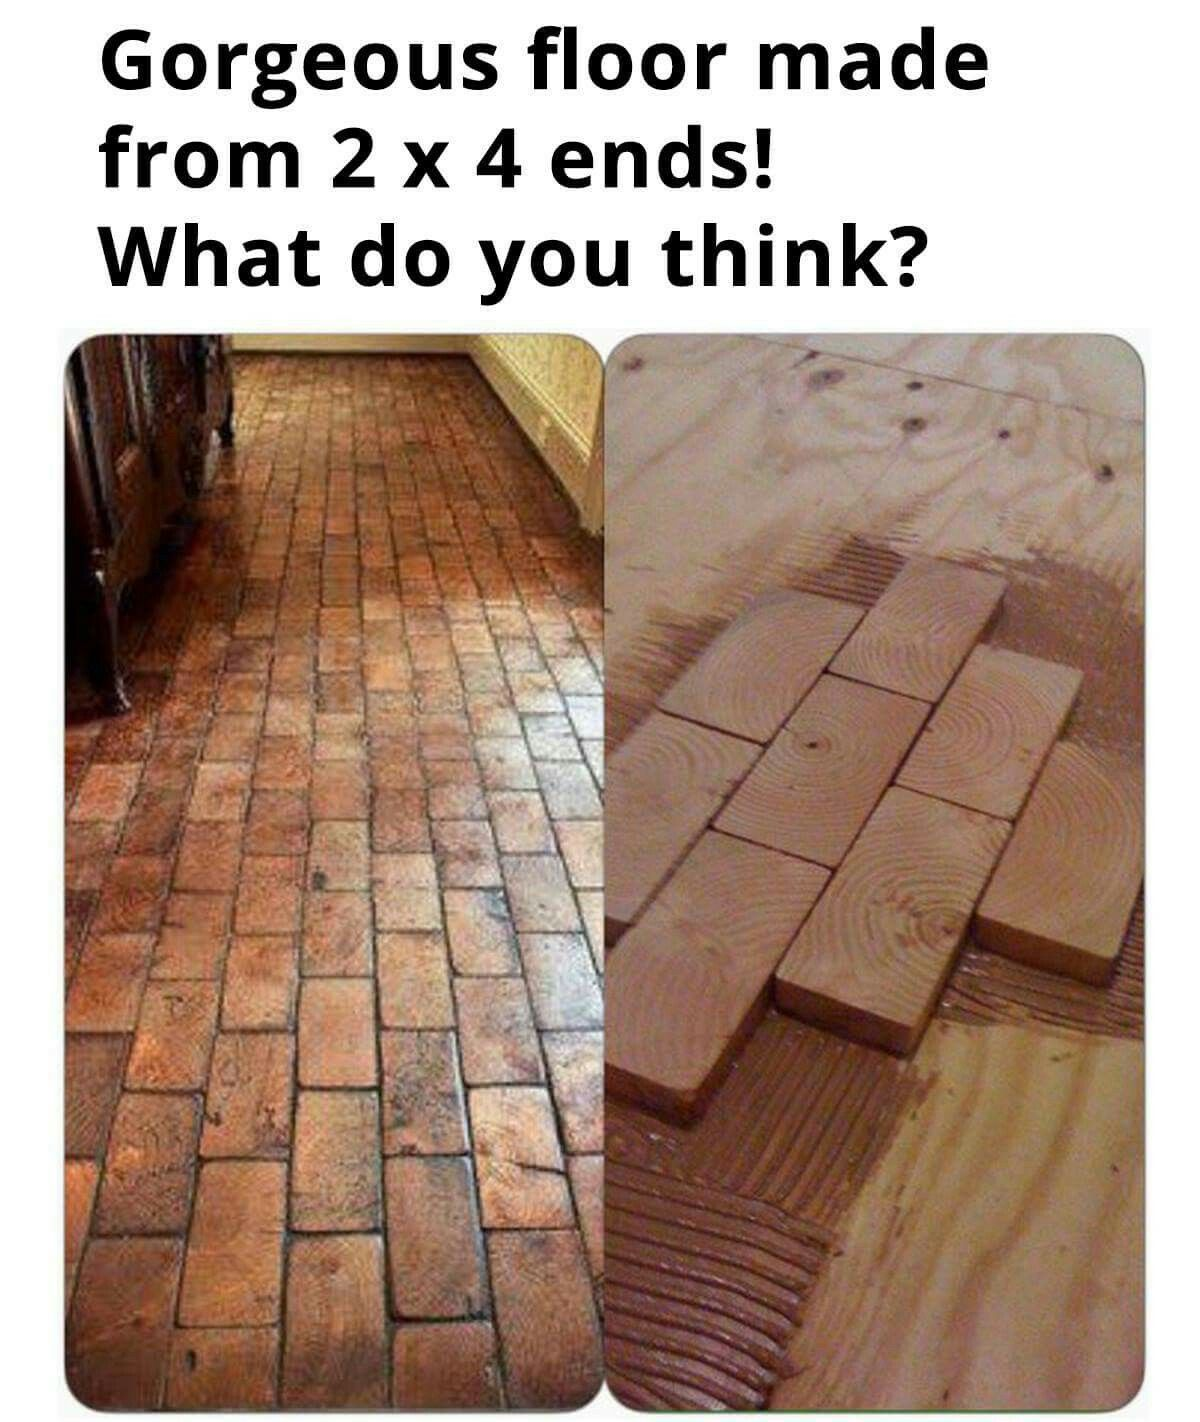 Gorgeous Floor Made From 2x4 Ends Inexpensive Flooring Kitchen Flooring Ideas Inexpensive Flooring